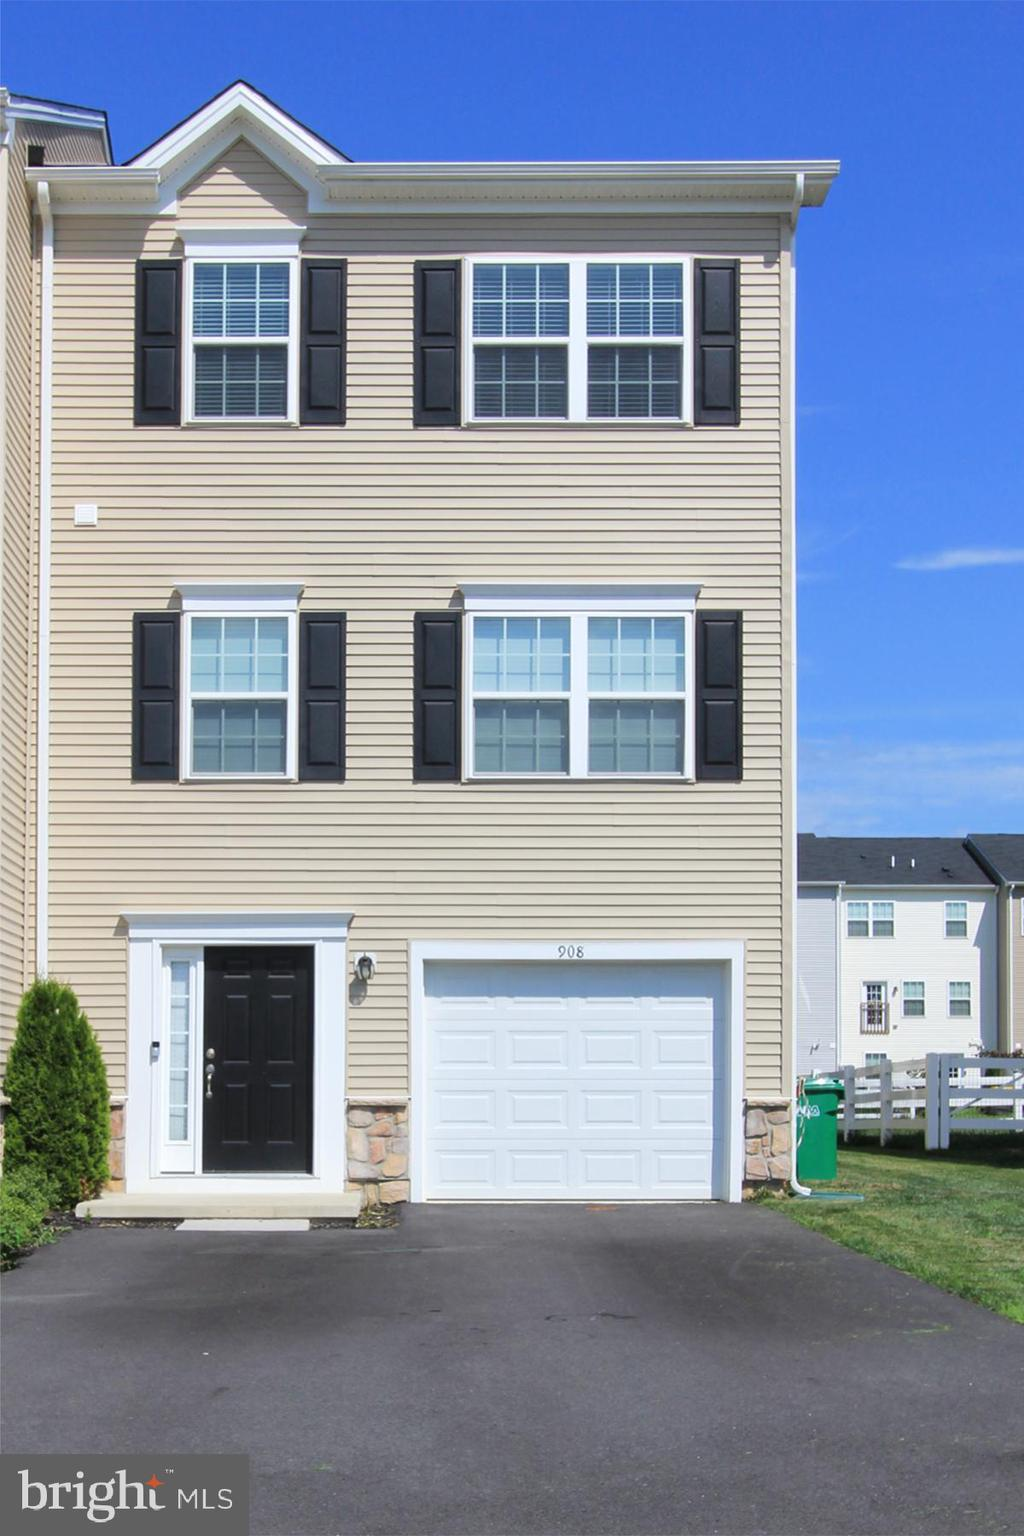 """WHY WAIT FOR NEW CONSTRUCTION WHEN YOU CAN PURCHASE THIS LUXURY TYDINGS MODEL TOWNHOME IN MINT CONDITION! This end unit townhome is just 2 years young and has been meticulously maintained. The 3 story townhome has a fabulous open floor plan with plenty of natural sunlight. Enter the home to a wide foyer that leads to a home office, den, gym, or a 4th bedroom. Also, there is a sliding glass door for easy access to the backyard.  The main level has soaring 9"""" ceilings, hardwood floors, recessed lighting, 42 inch white kitchen cabinets, granite countertops, stainless steel appliances, 7"""" center island that has enough space for 6 counter stools. Enjoy fantastic parties with family and friends. The upper level has a spacious master bedroom with a walk-in closet, en suite bathroom with a large dual vanity and owner's super shower. Additional two ample sized bedrooms and a full hall bathroom completes this level. Conveniently located off of route 1. Your search is finally over. This is a must see! Showings begin Friday 7/17/21."""